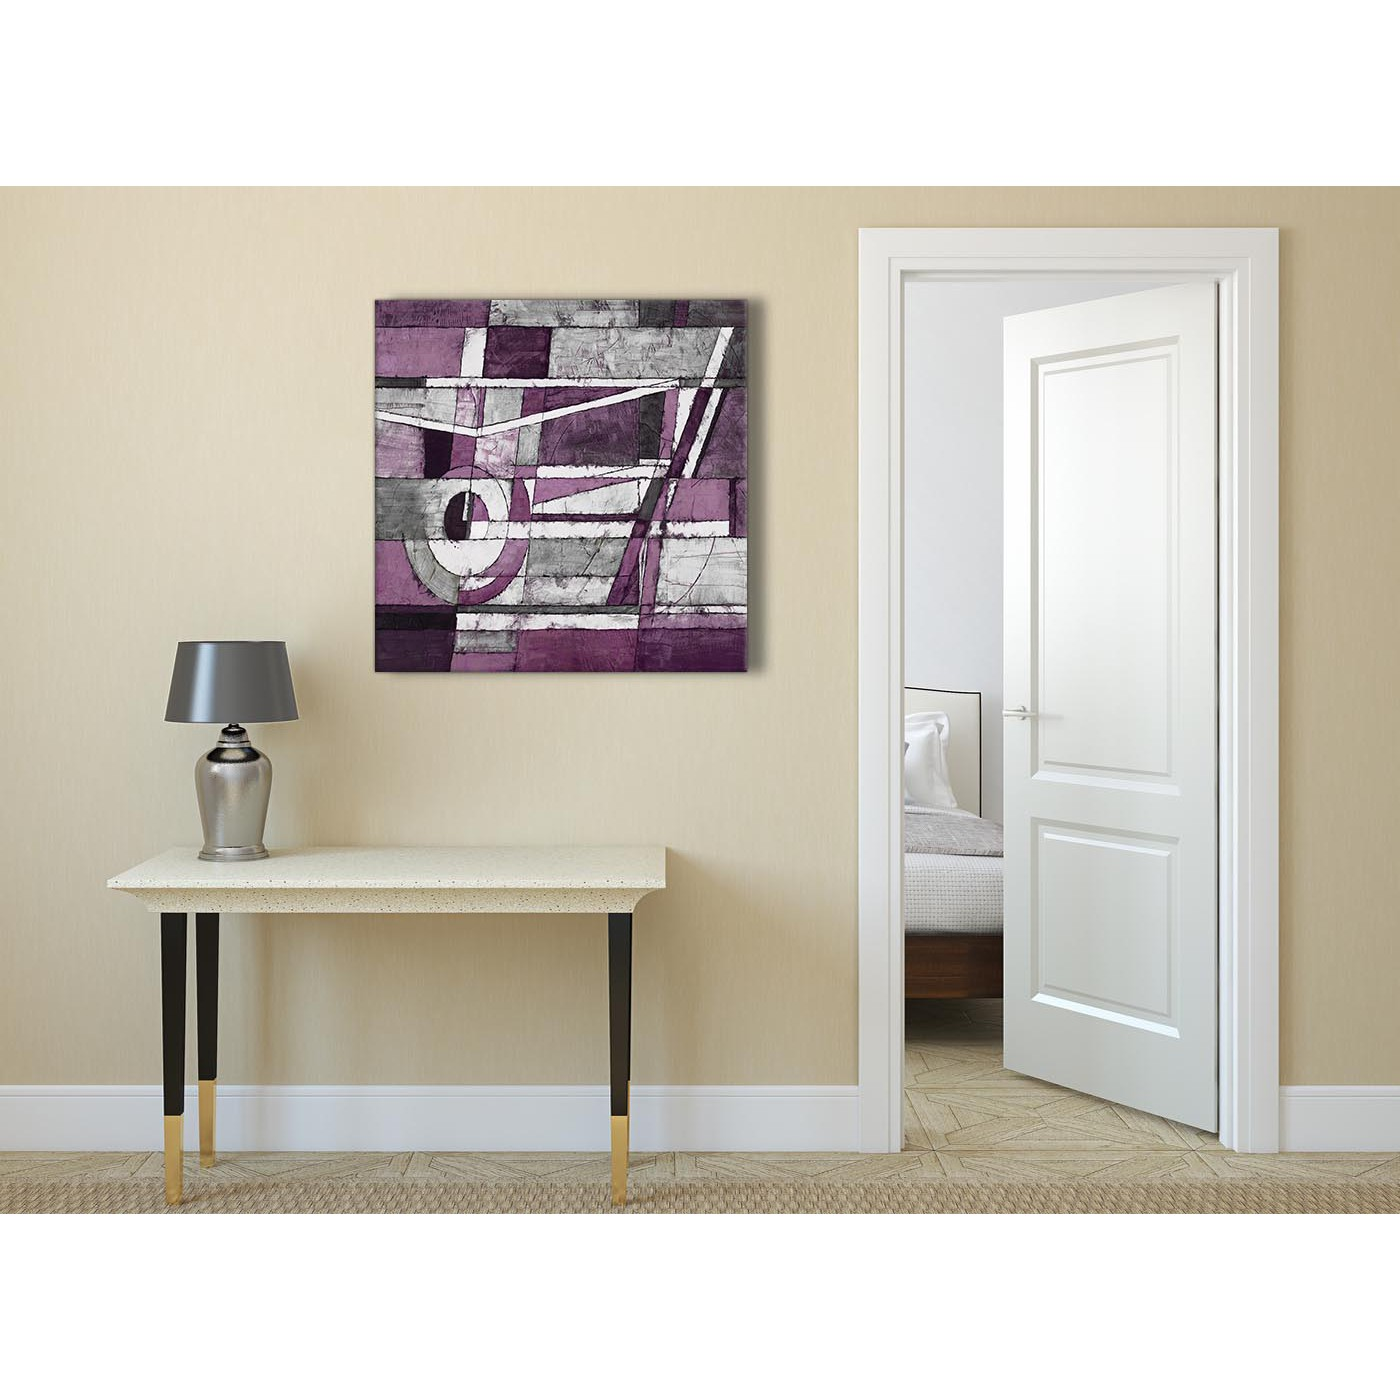 Display Gallery Item 1; Aubergine Grey White Painting Abstract Dining Room  Canvas Pictures Decorations 1s406l   79cm Square Print Display Gallery Item  2 ...